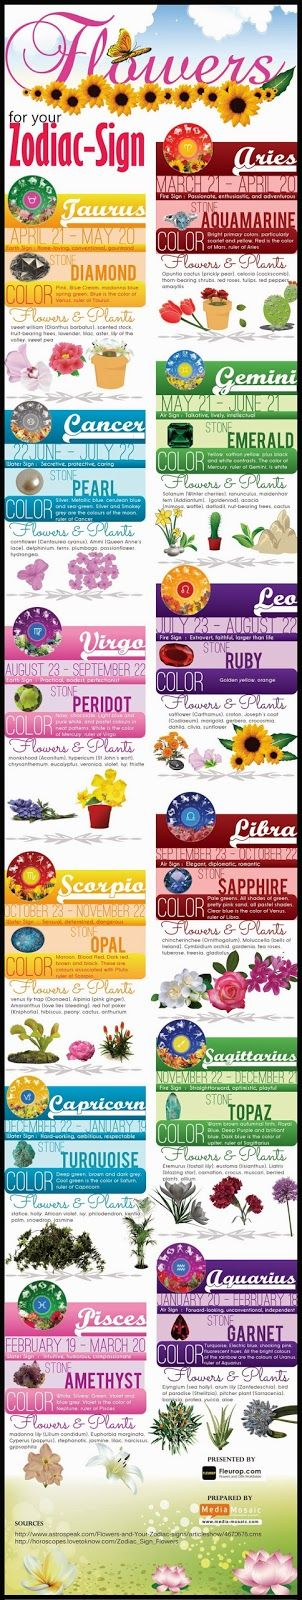 International Flower Delivery Services: Flowers for Your Zodiac Sign